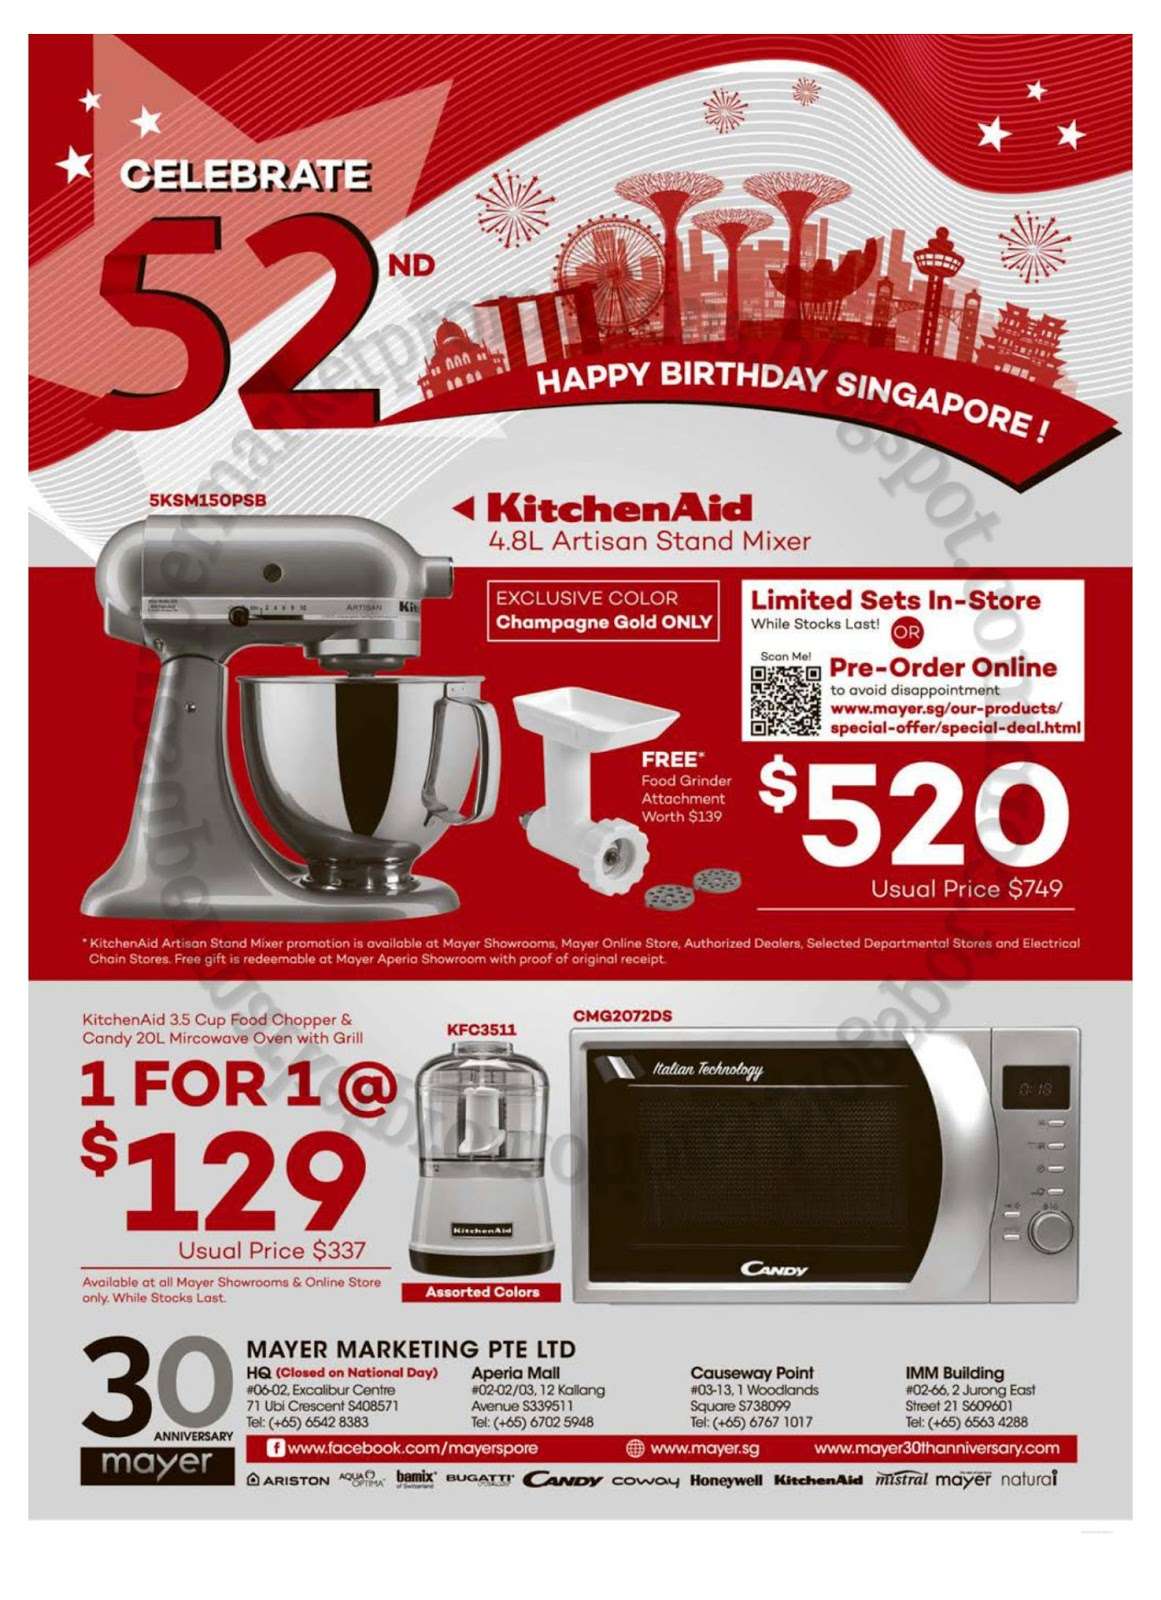 Mayer KitchenAid Promotion 08 August 2017 Amazing Ideas